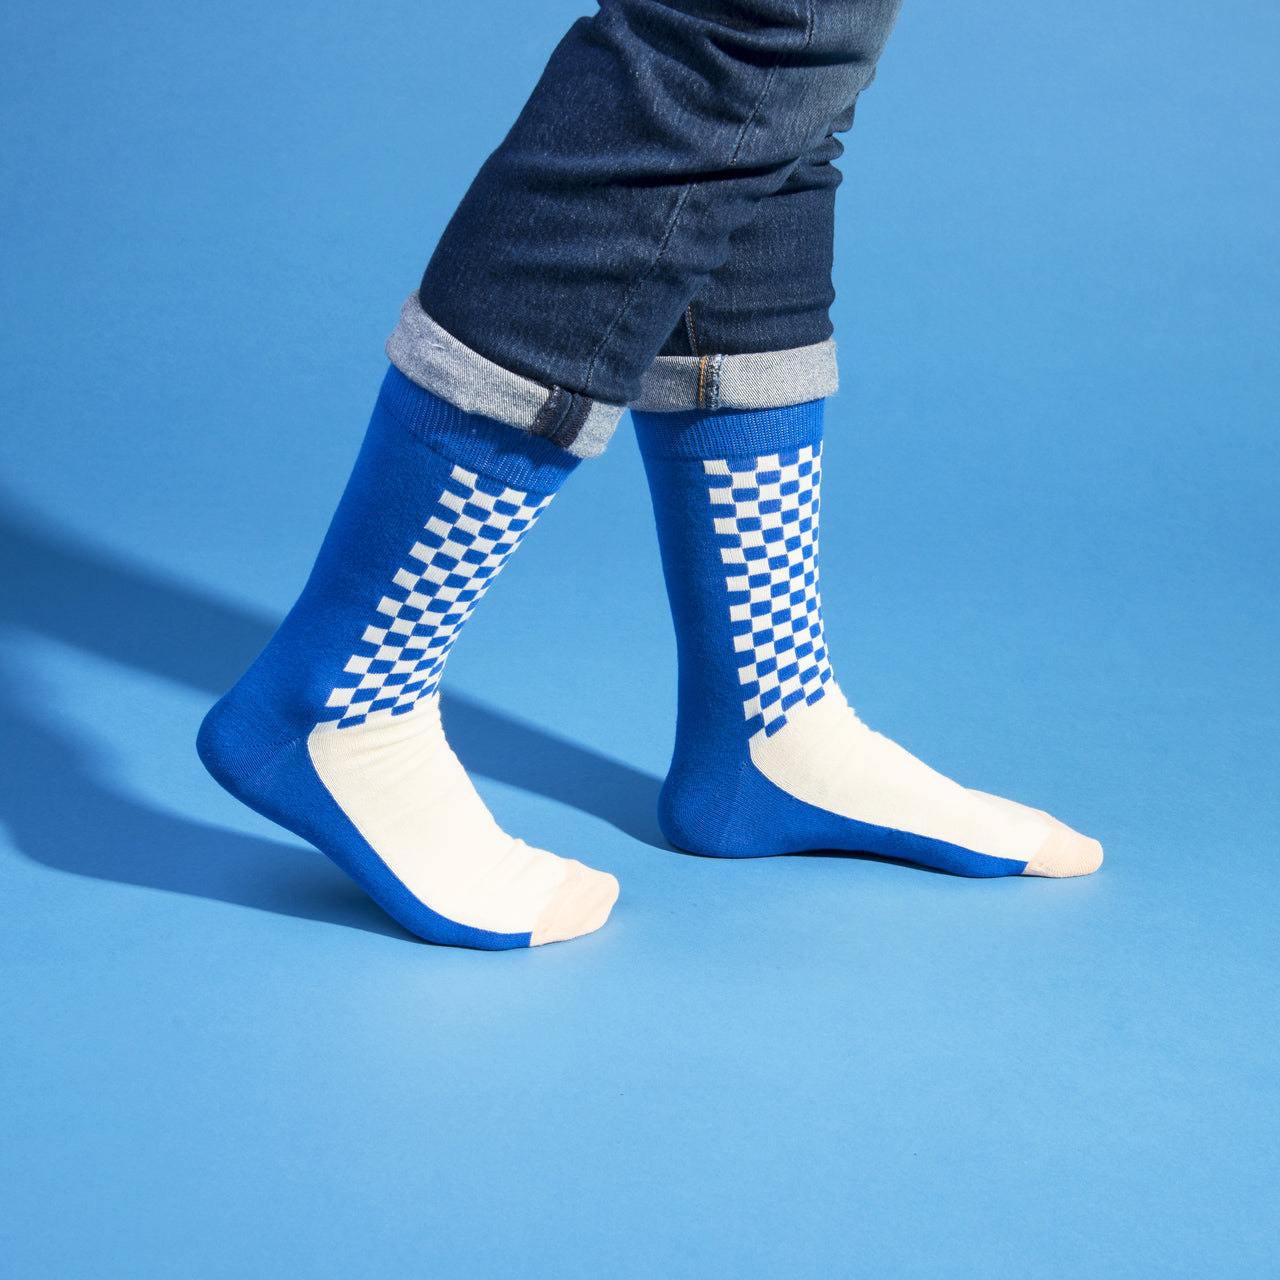 Weekday Socks - Checkerboard